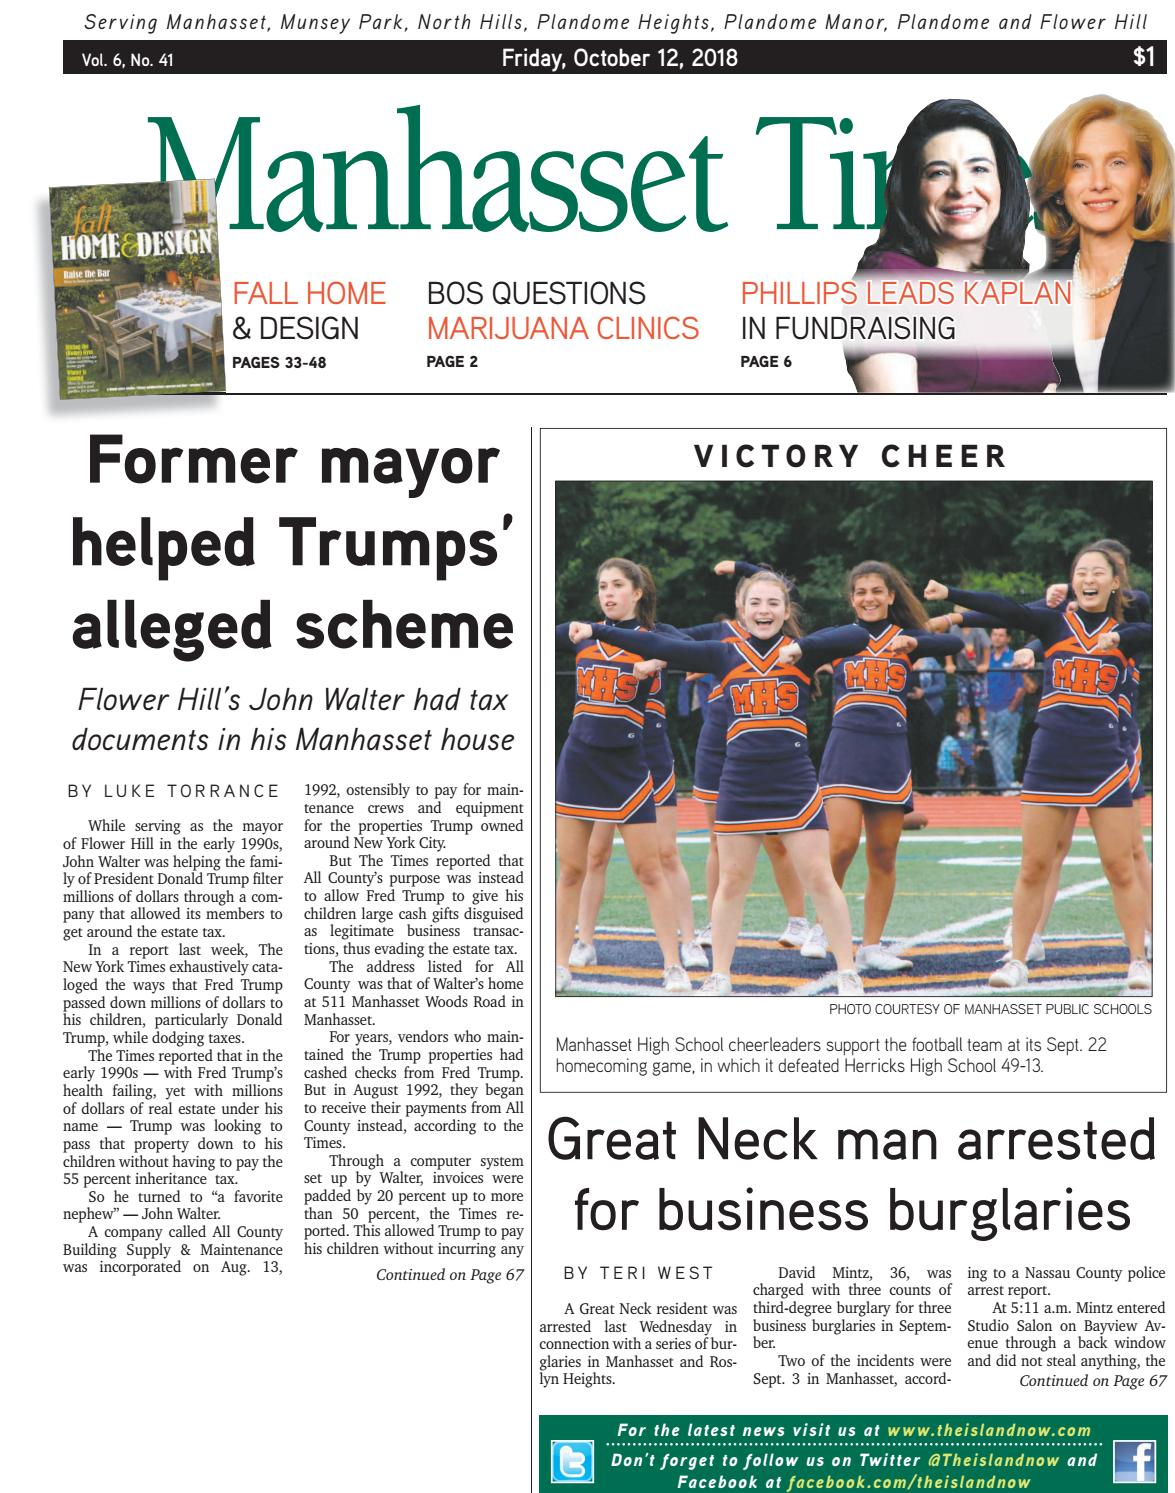 Manhasset Times 2018 10 12 by The Island Now - issuu 19e92e4992412